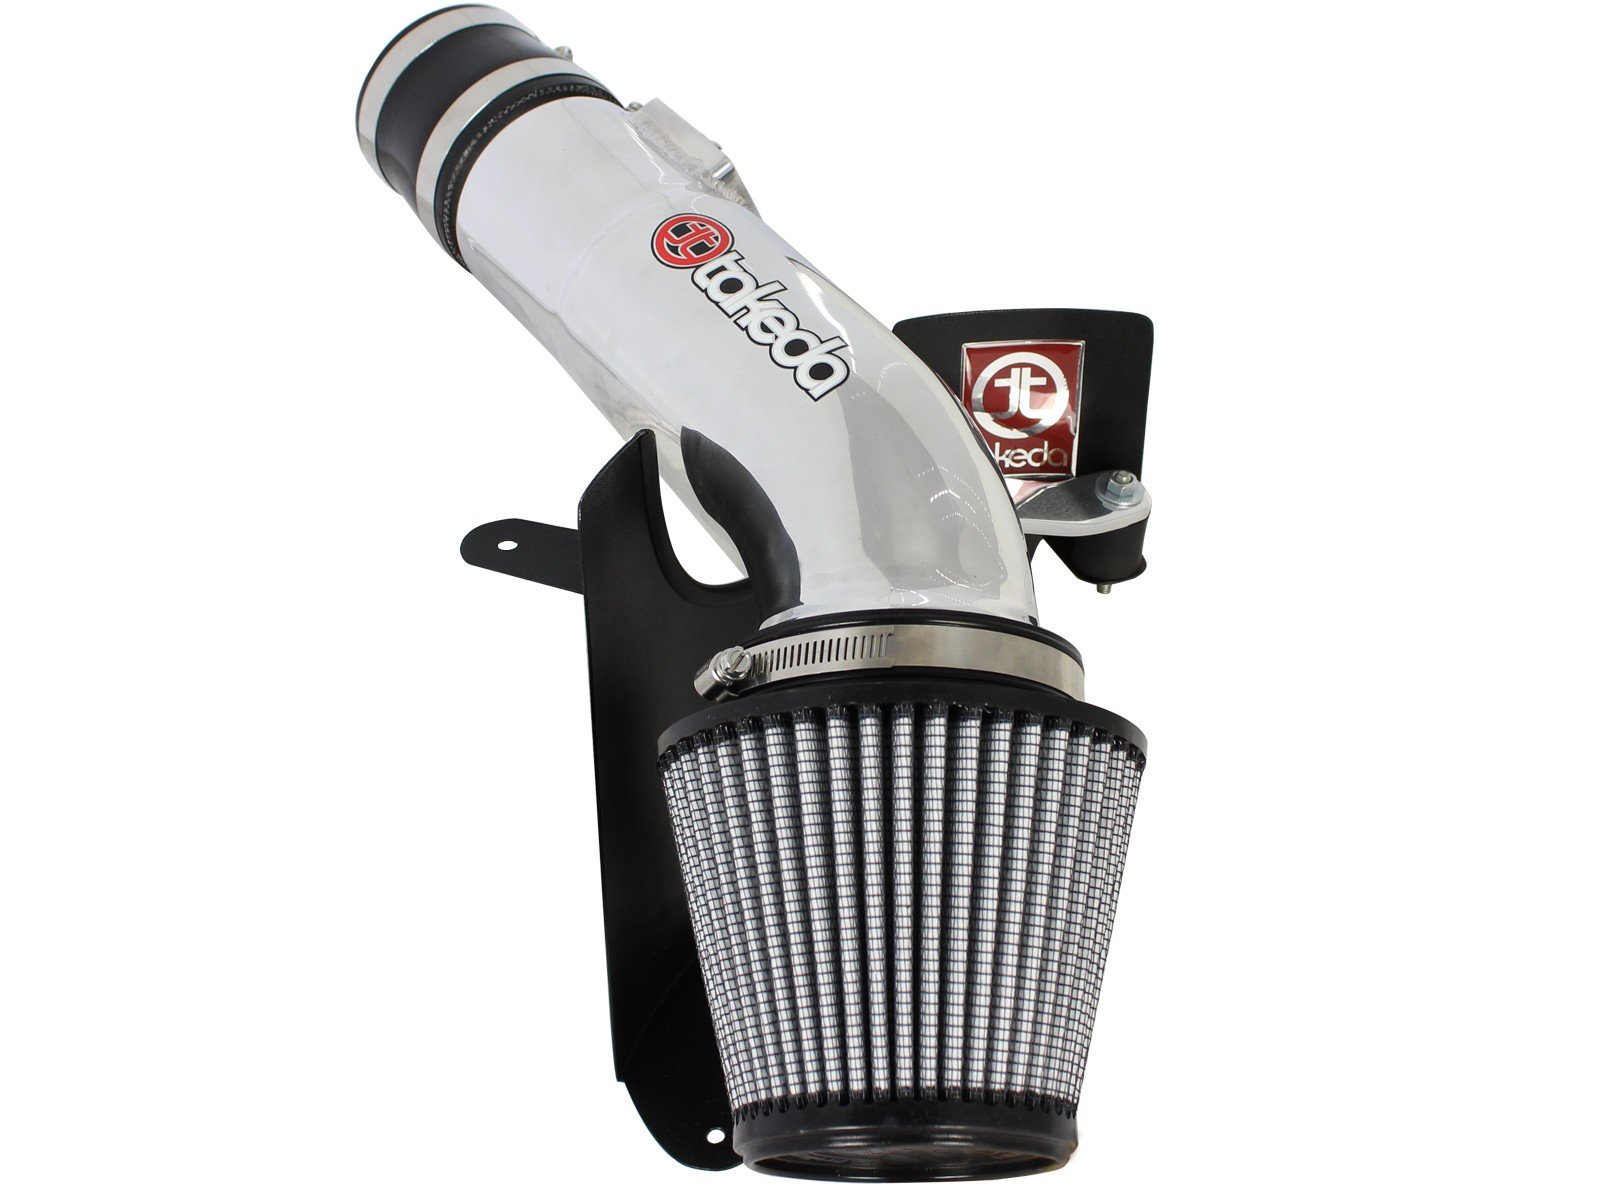 aFe POWER TR-1021P-D Takeda Stage-2 Pro DRY S Cold Air Intake System